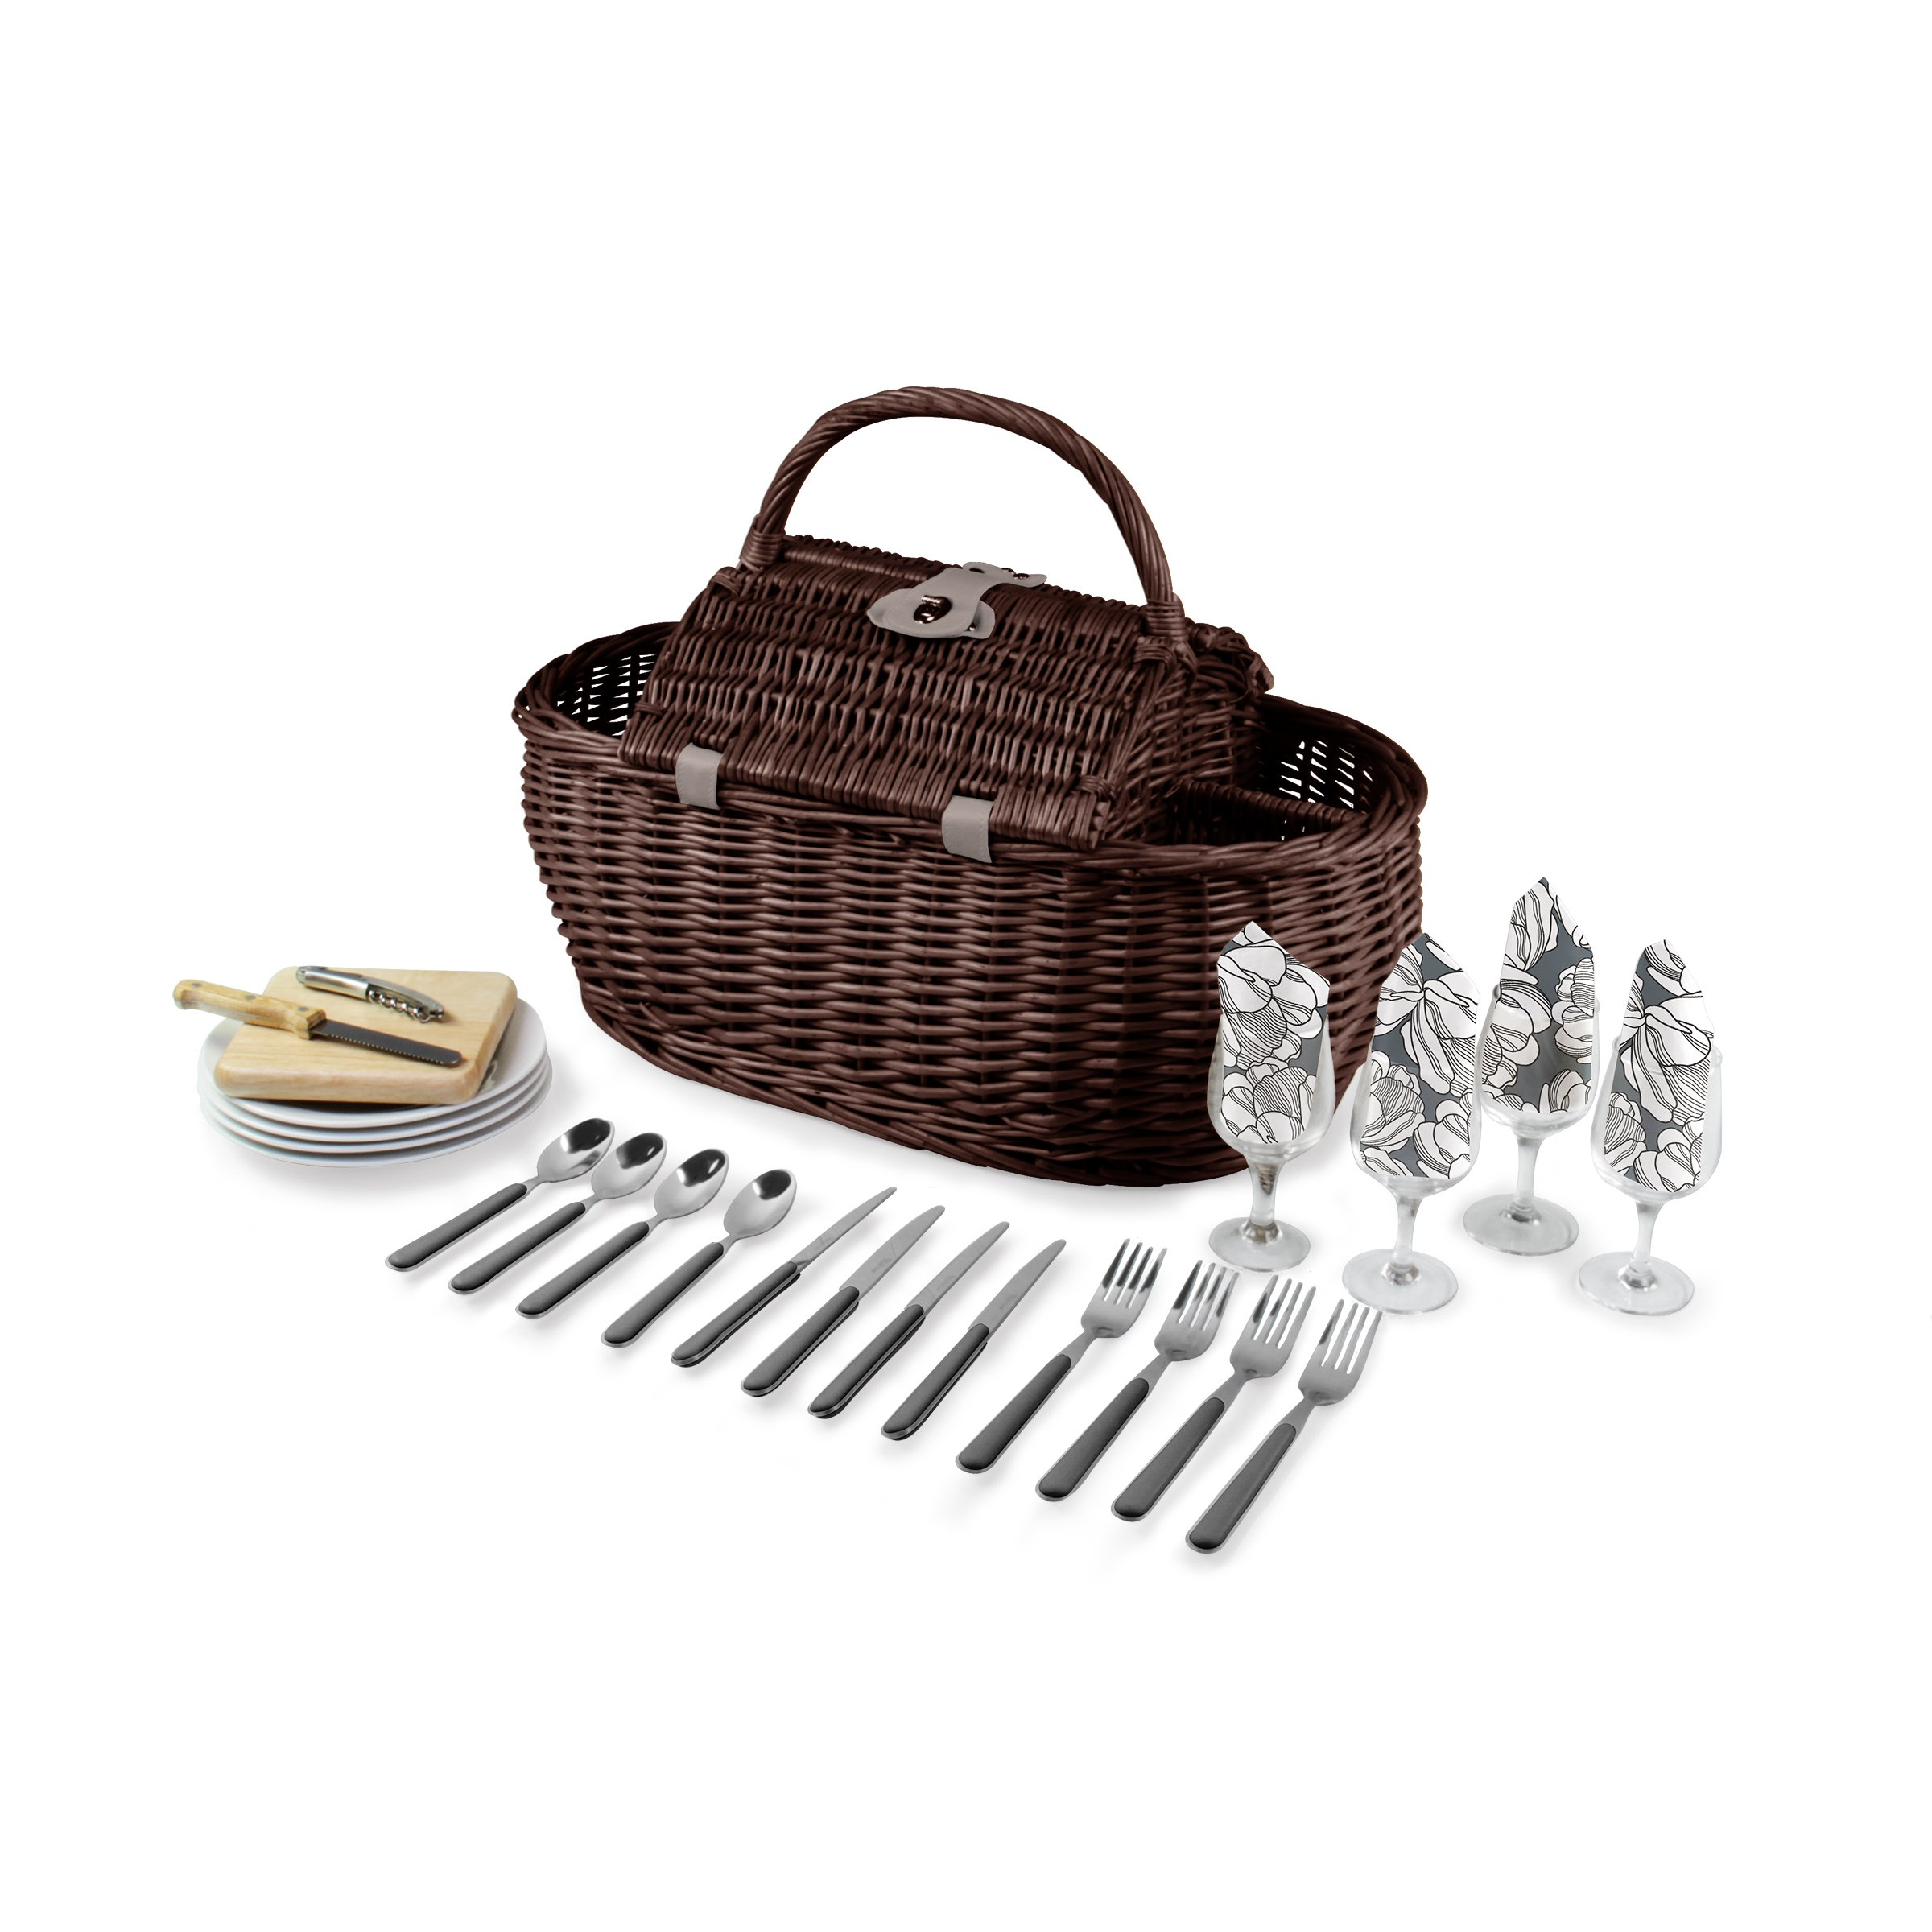 Picnic Time Gondola Picnic Basket with Service for Four, Harmony Collection